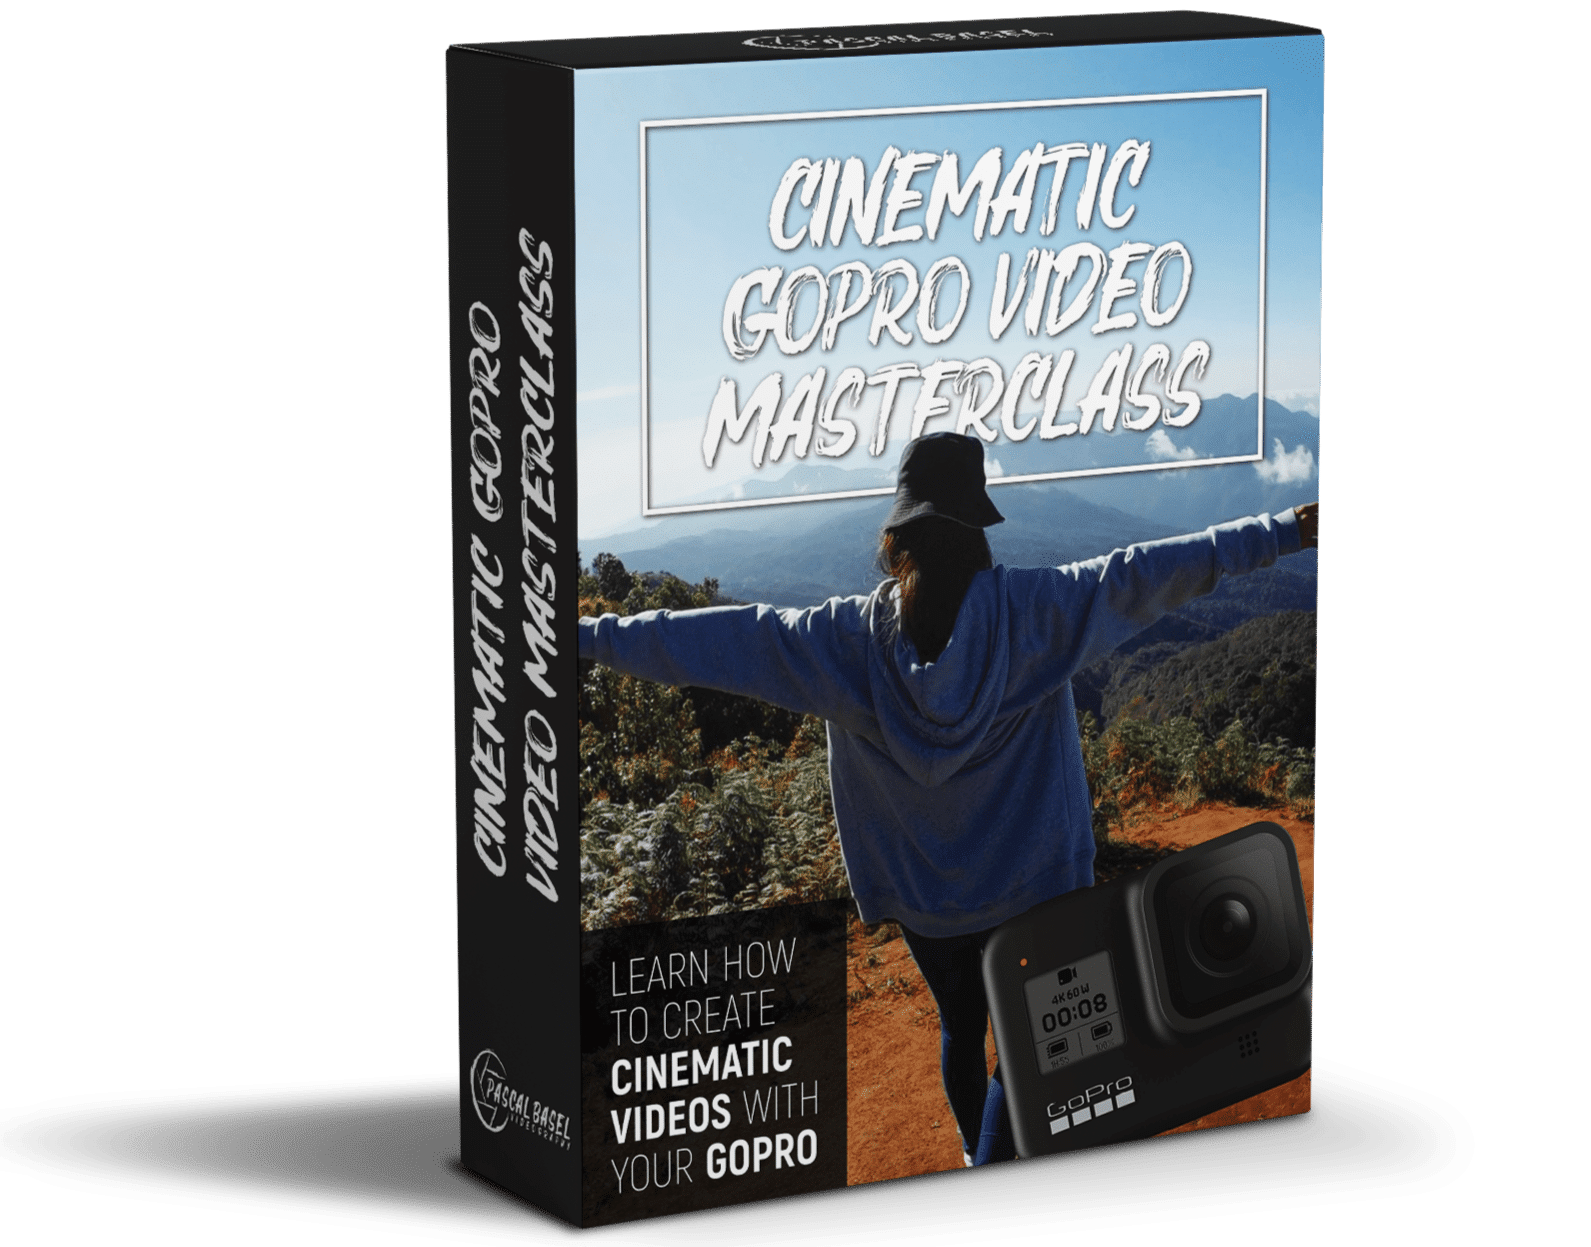 Cinematic GoPro Video Masterclass